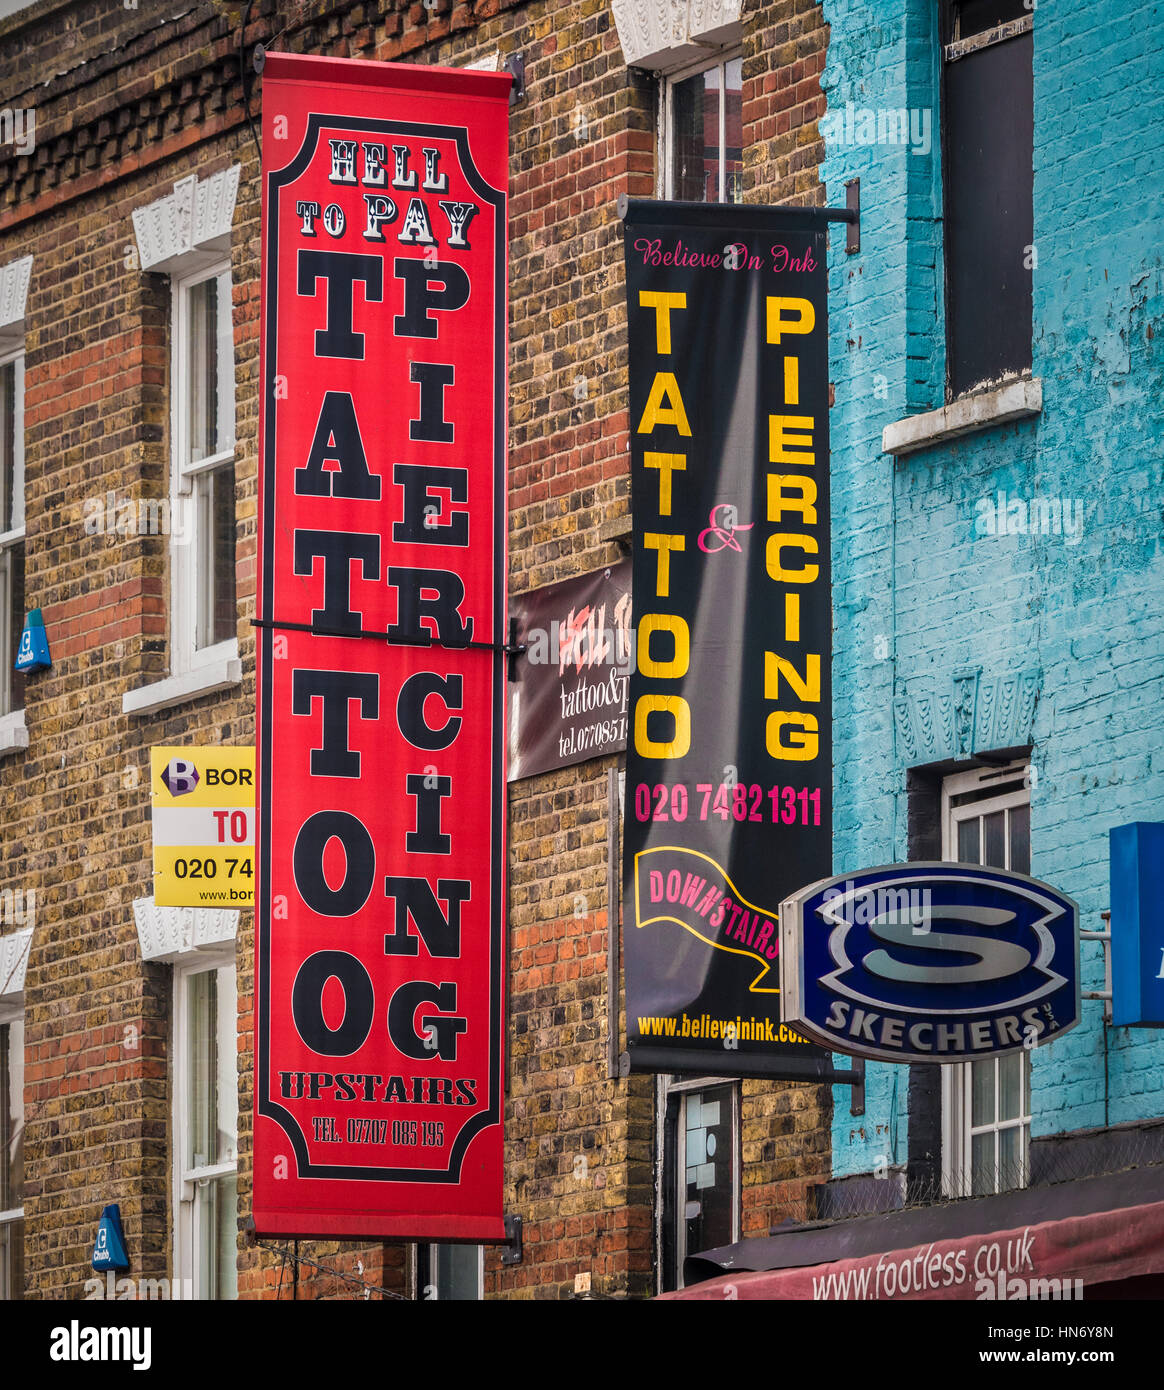 tattoo and Piercing advertising signs on outside of buildings, Camden, London, UK. - Stock Image